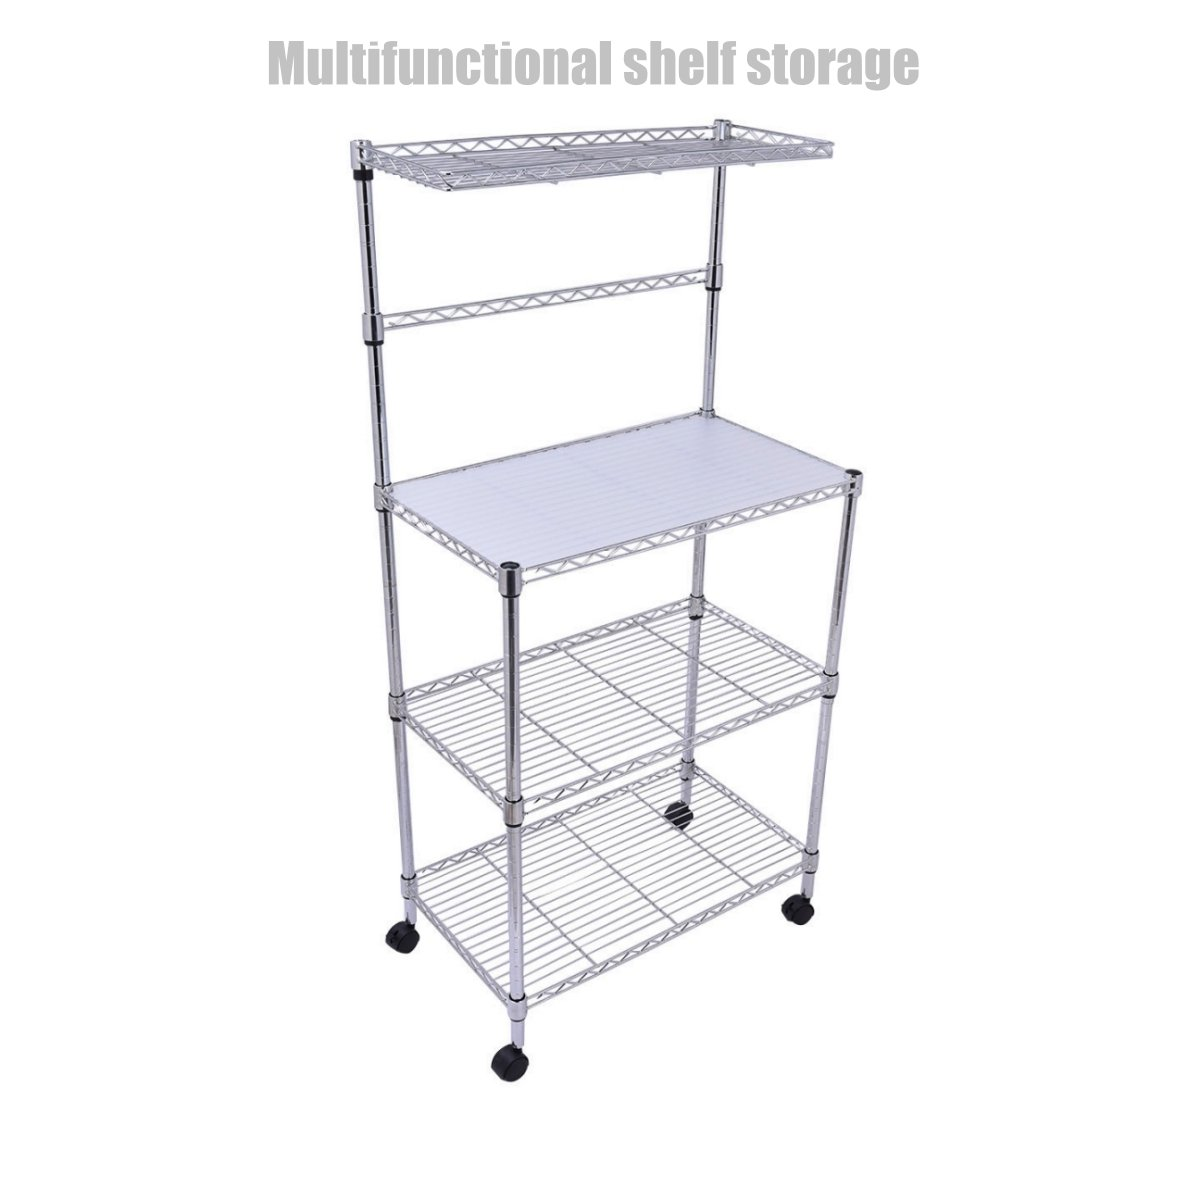 3 Tier Heavy Duty Kitchen Office Rack Microwave Oven Stand Storage Cart Wire Shelving Steel Shelf Adjustable Rack Durable Construction Stable Castor Wheels - Chrome Finish #1304